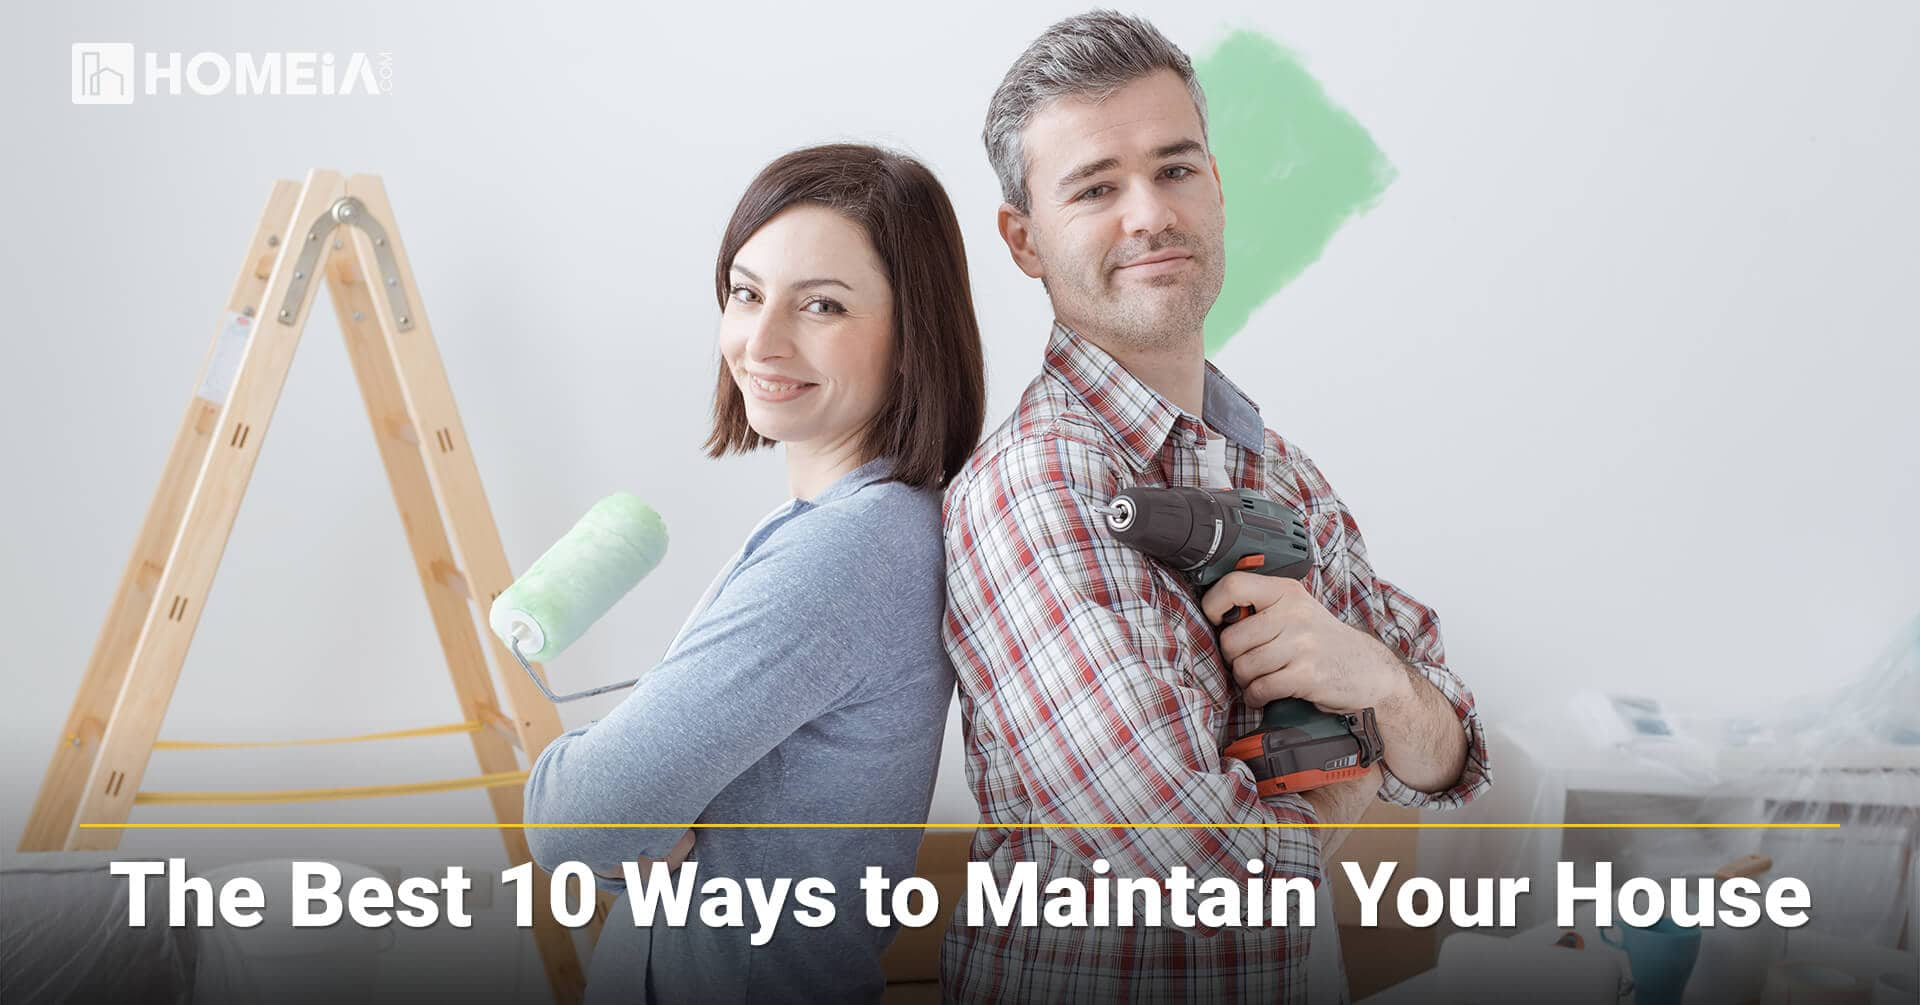 The Best 10 Ways to Maintain Your House